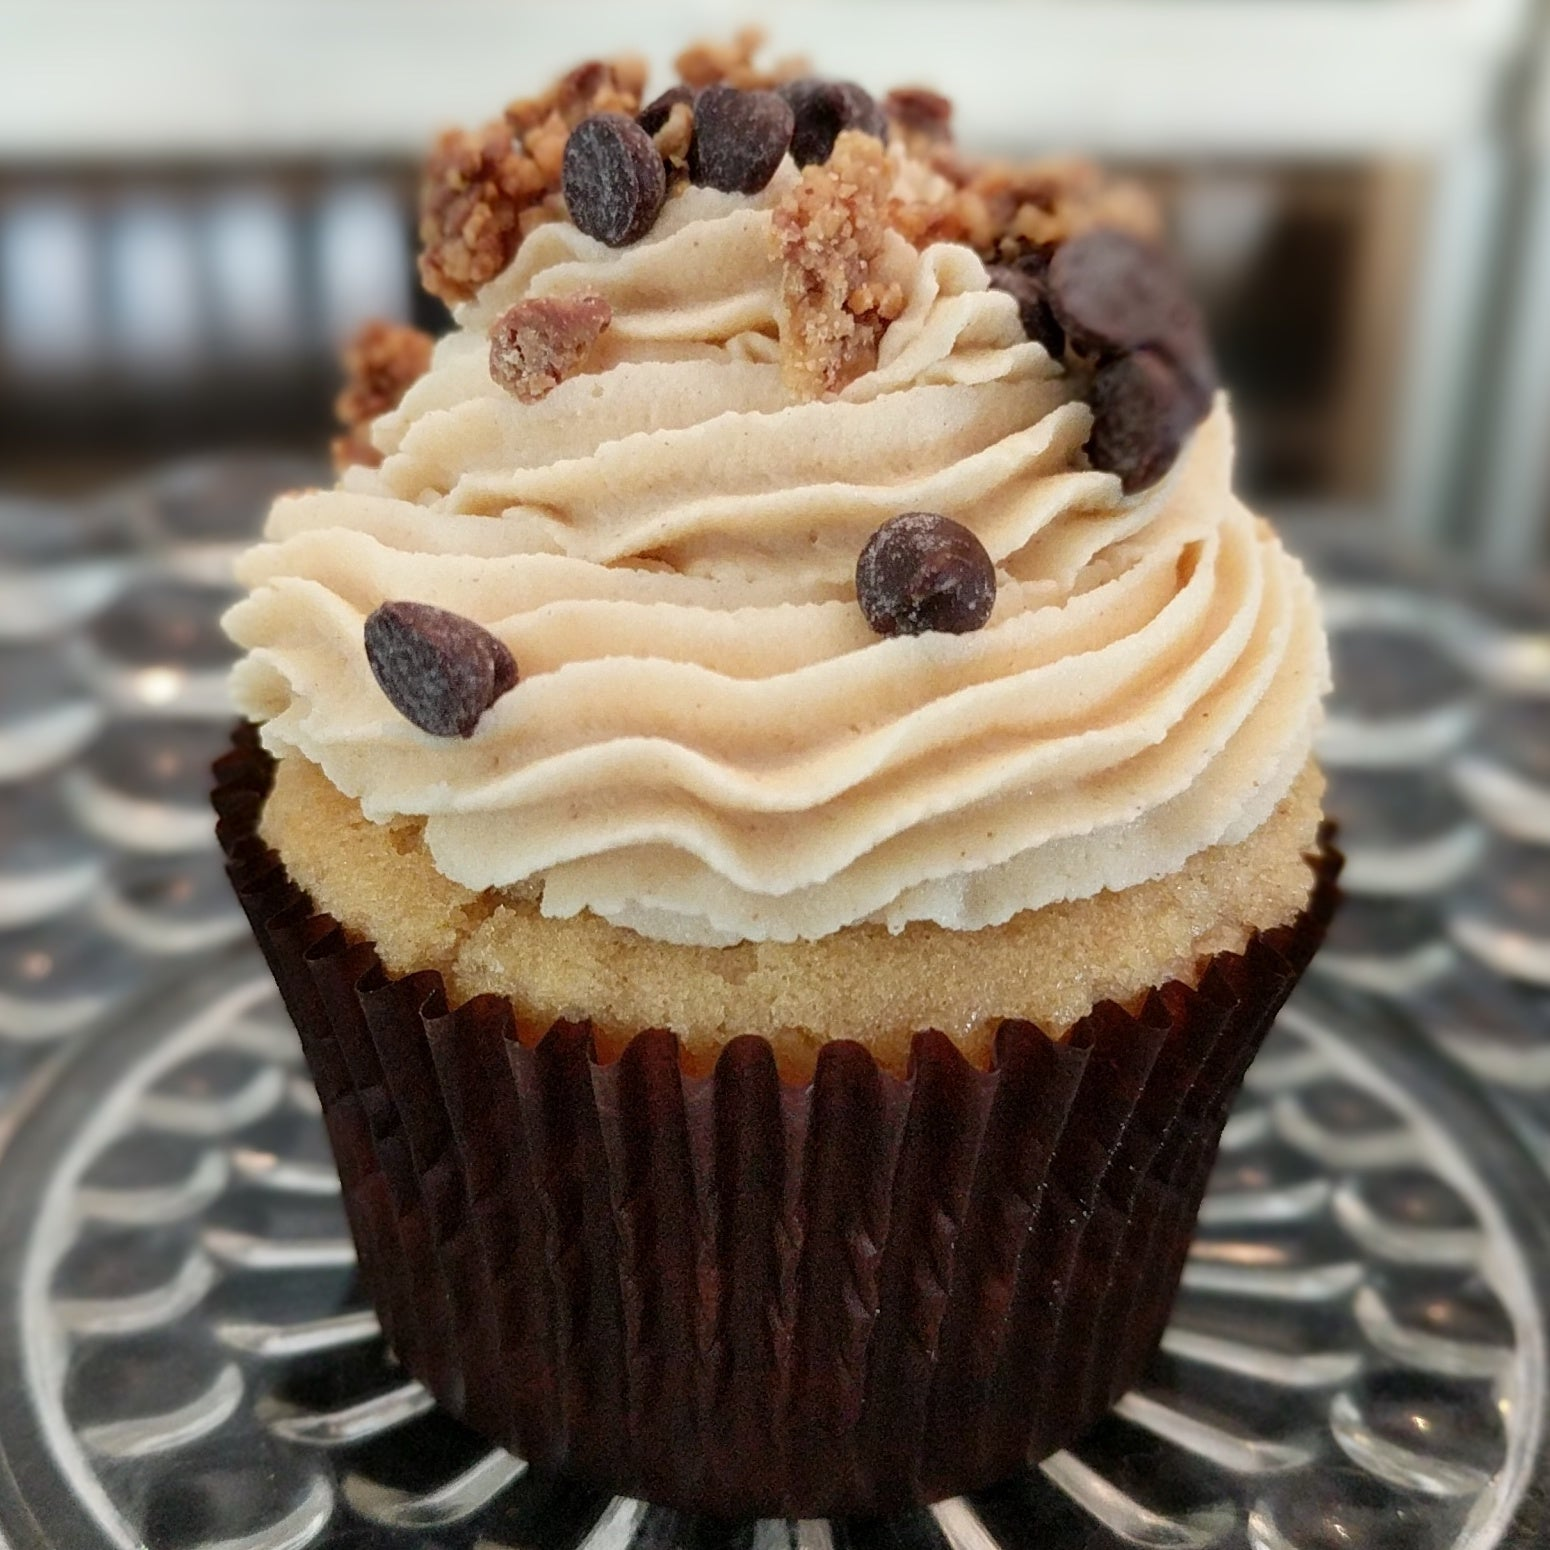 Peanut Butter Cupcake with Peanut Butter Buttercream